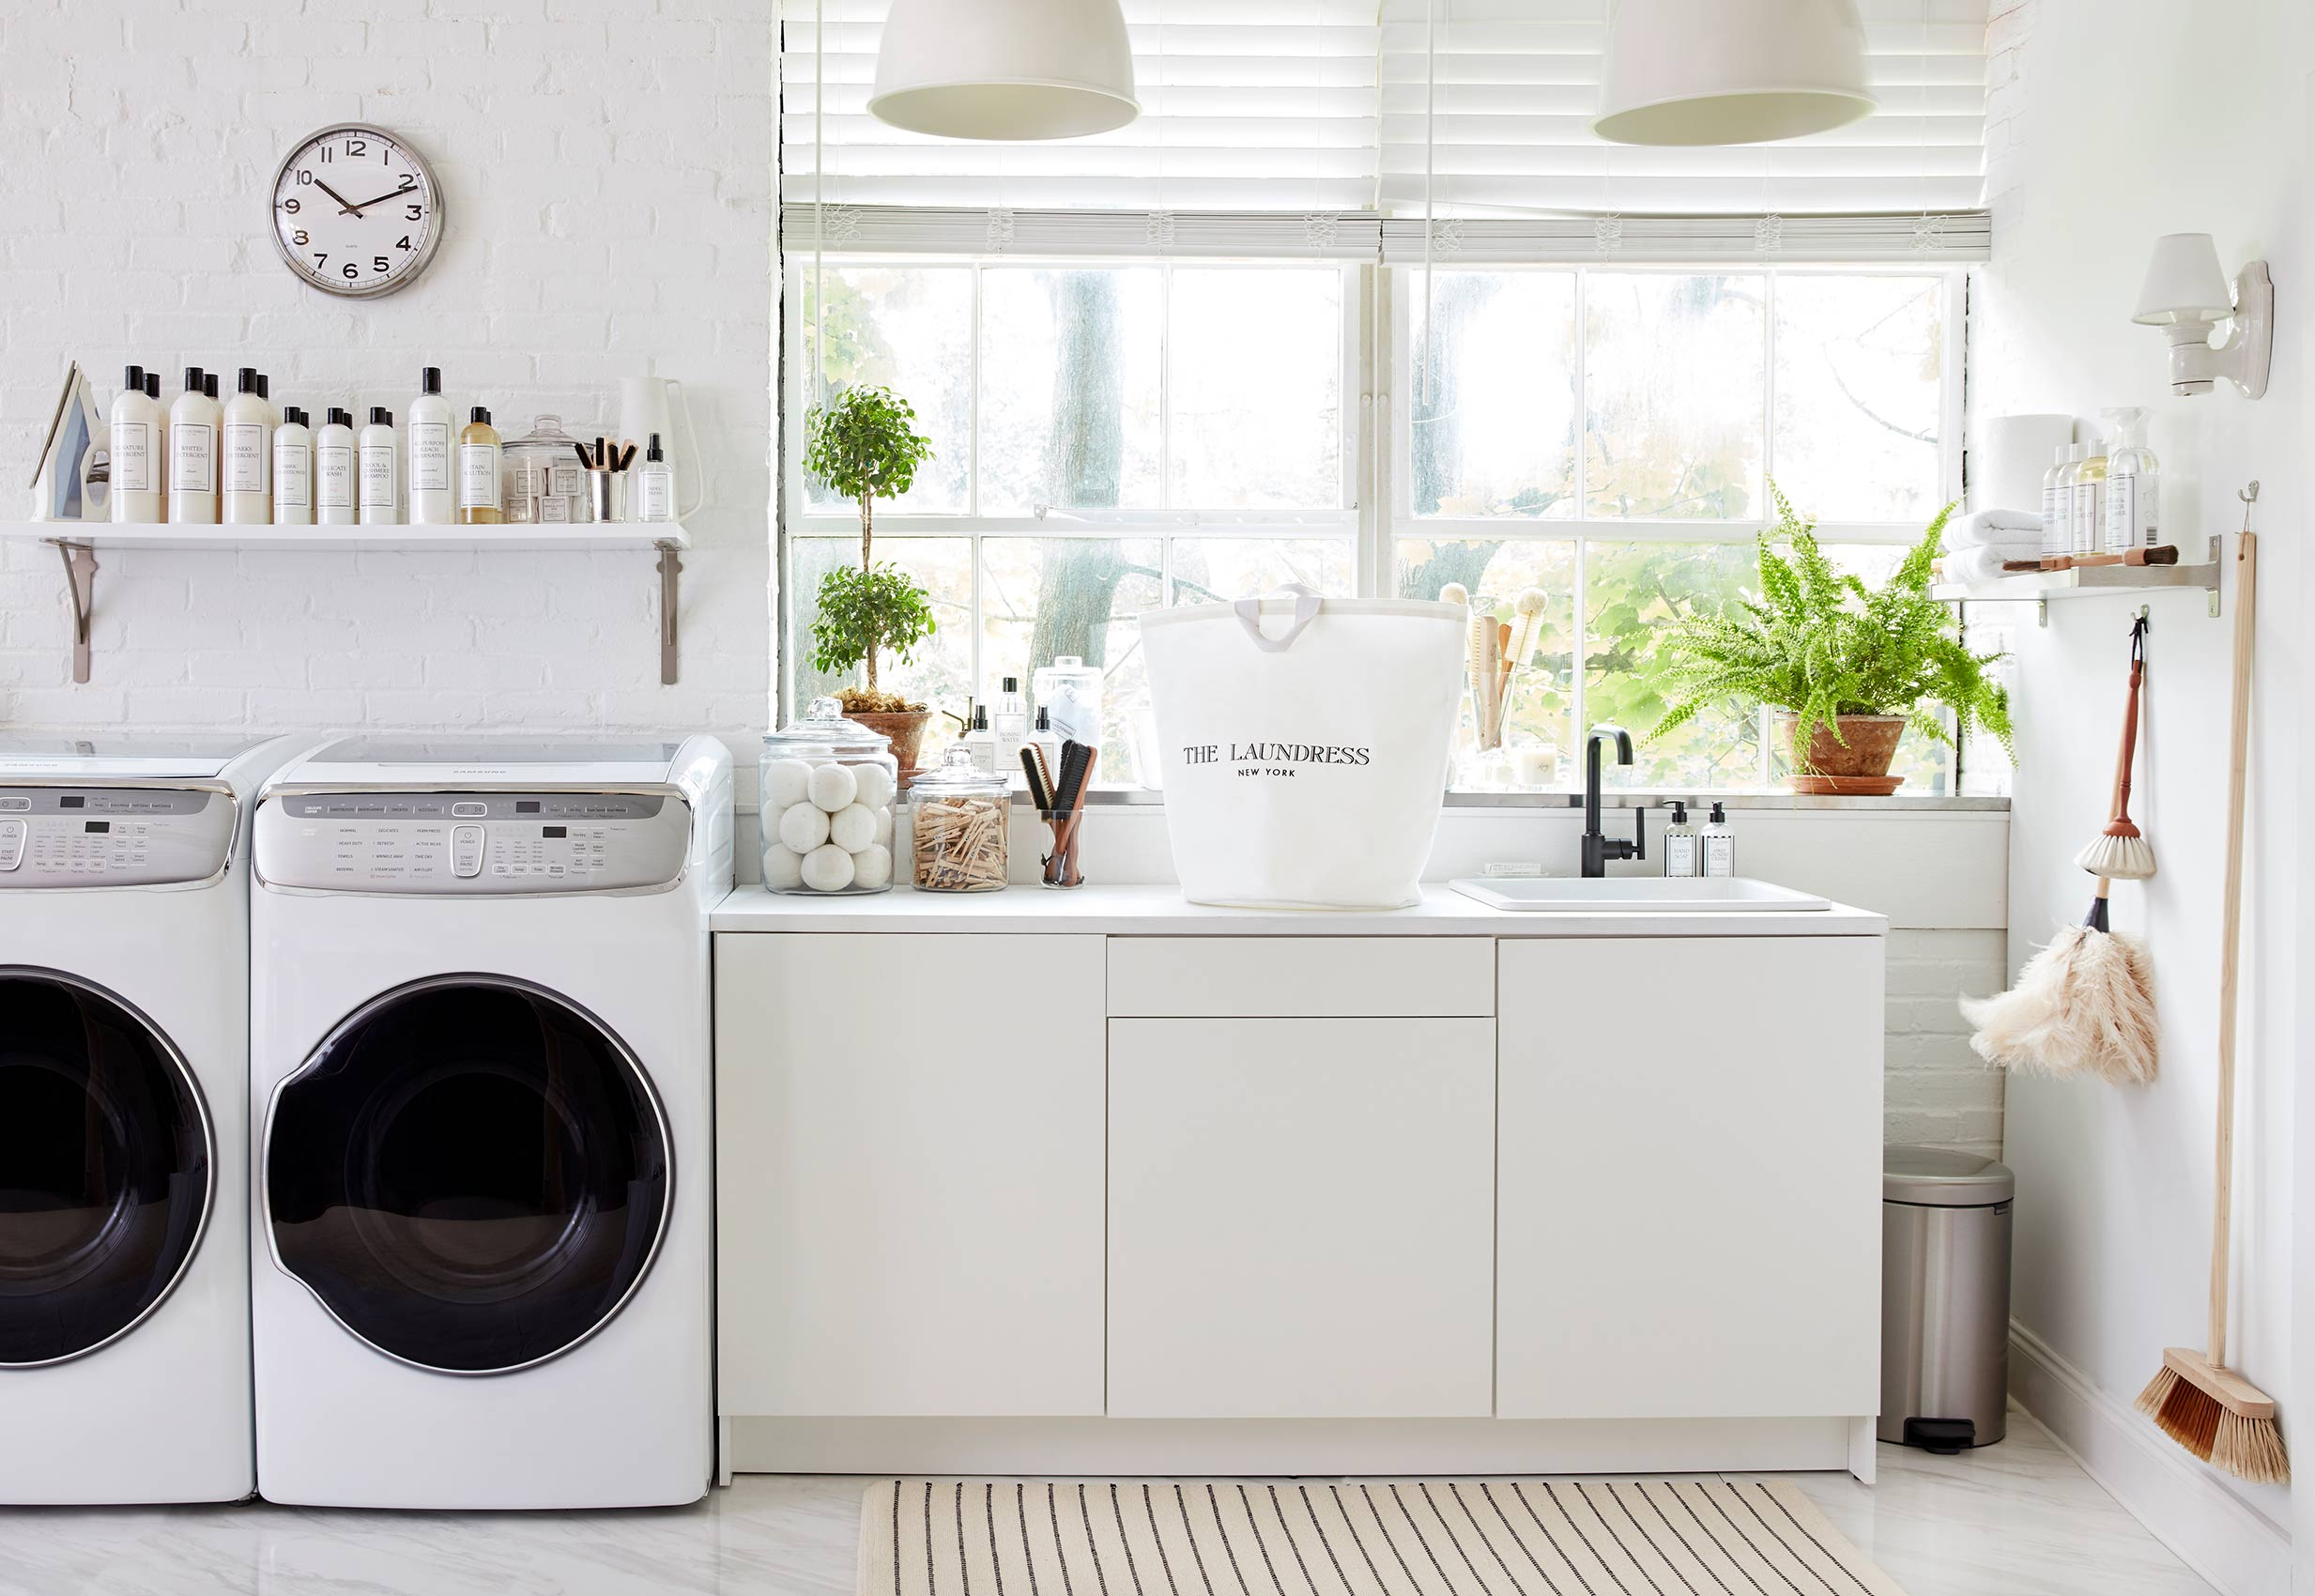 Catalog photo for The Laundress featuring laundry room and sink area